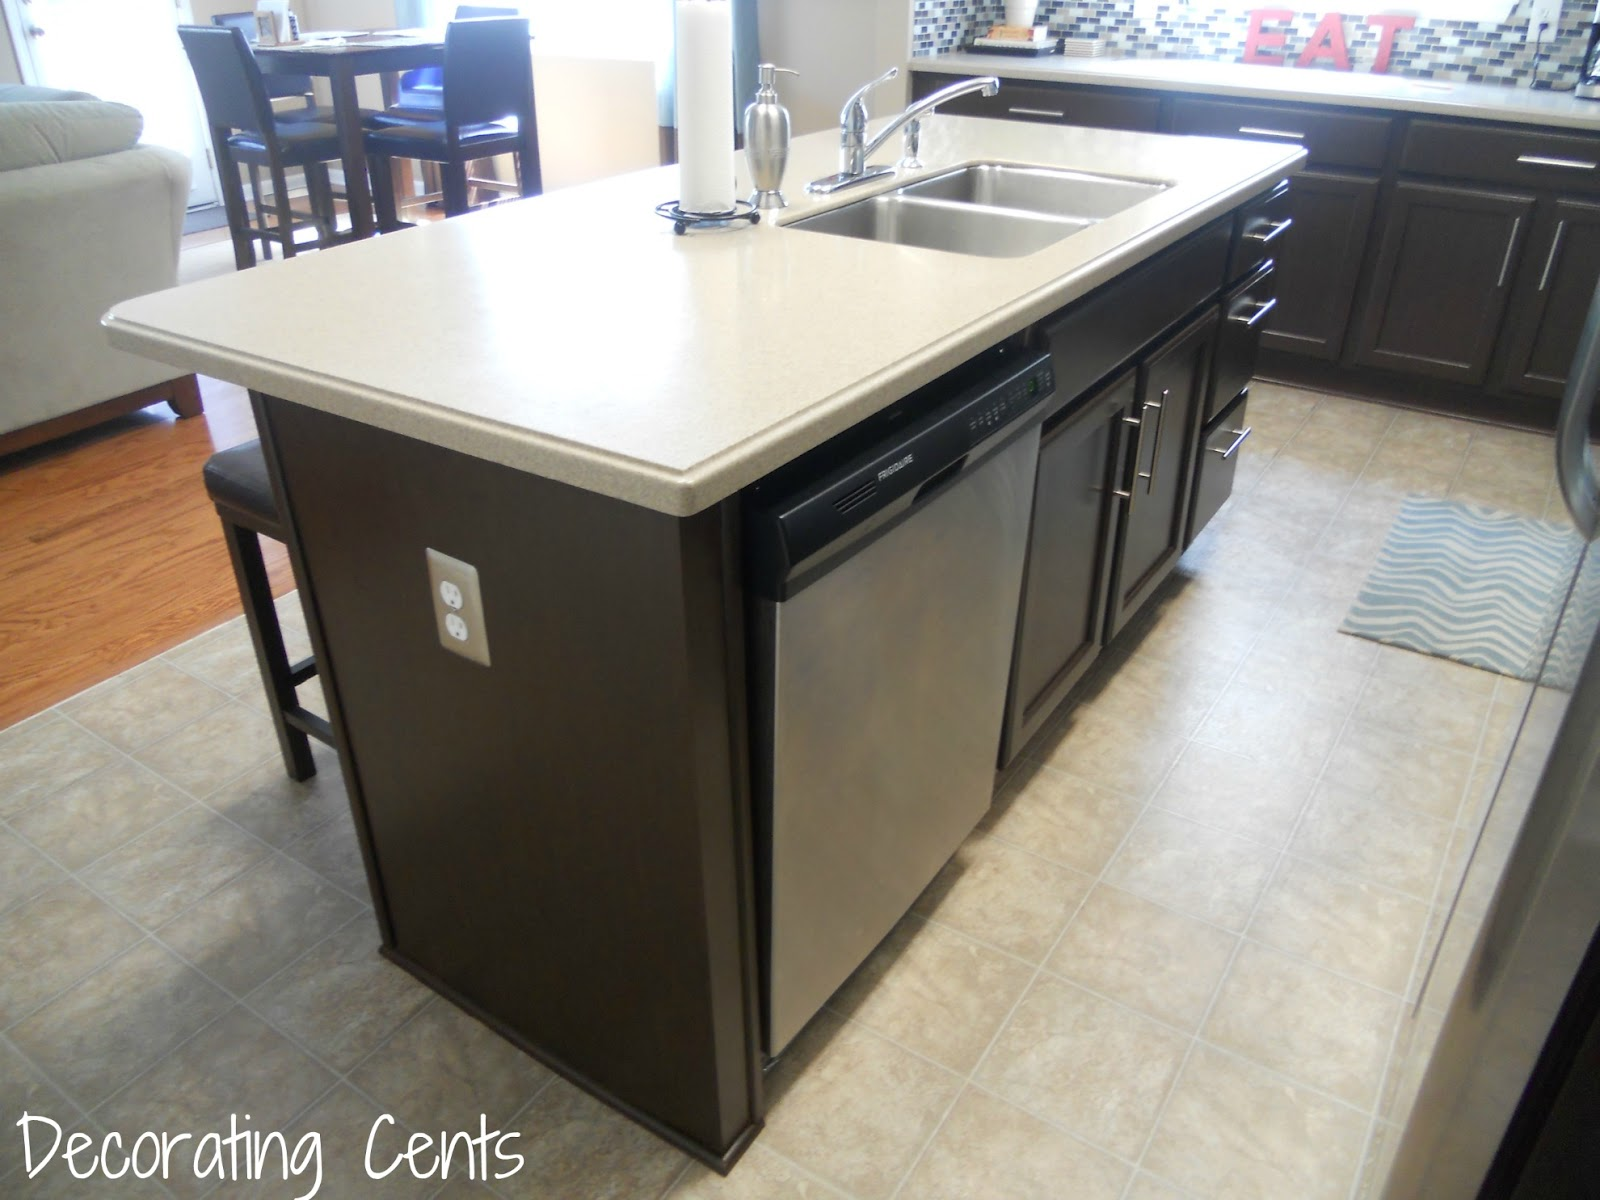 electrical outlet dishwasher install kitchen island Electrical outlet next to dishwasher countertop appliance install kitchen House remodeling decorating construction energy use kitchen bathroom